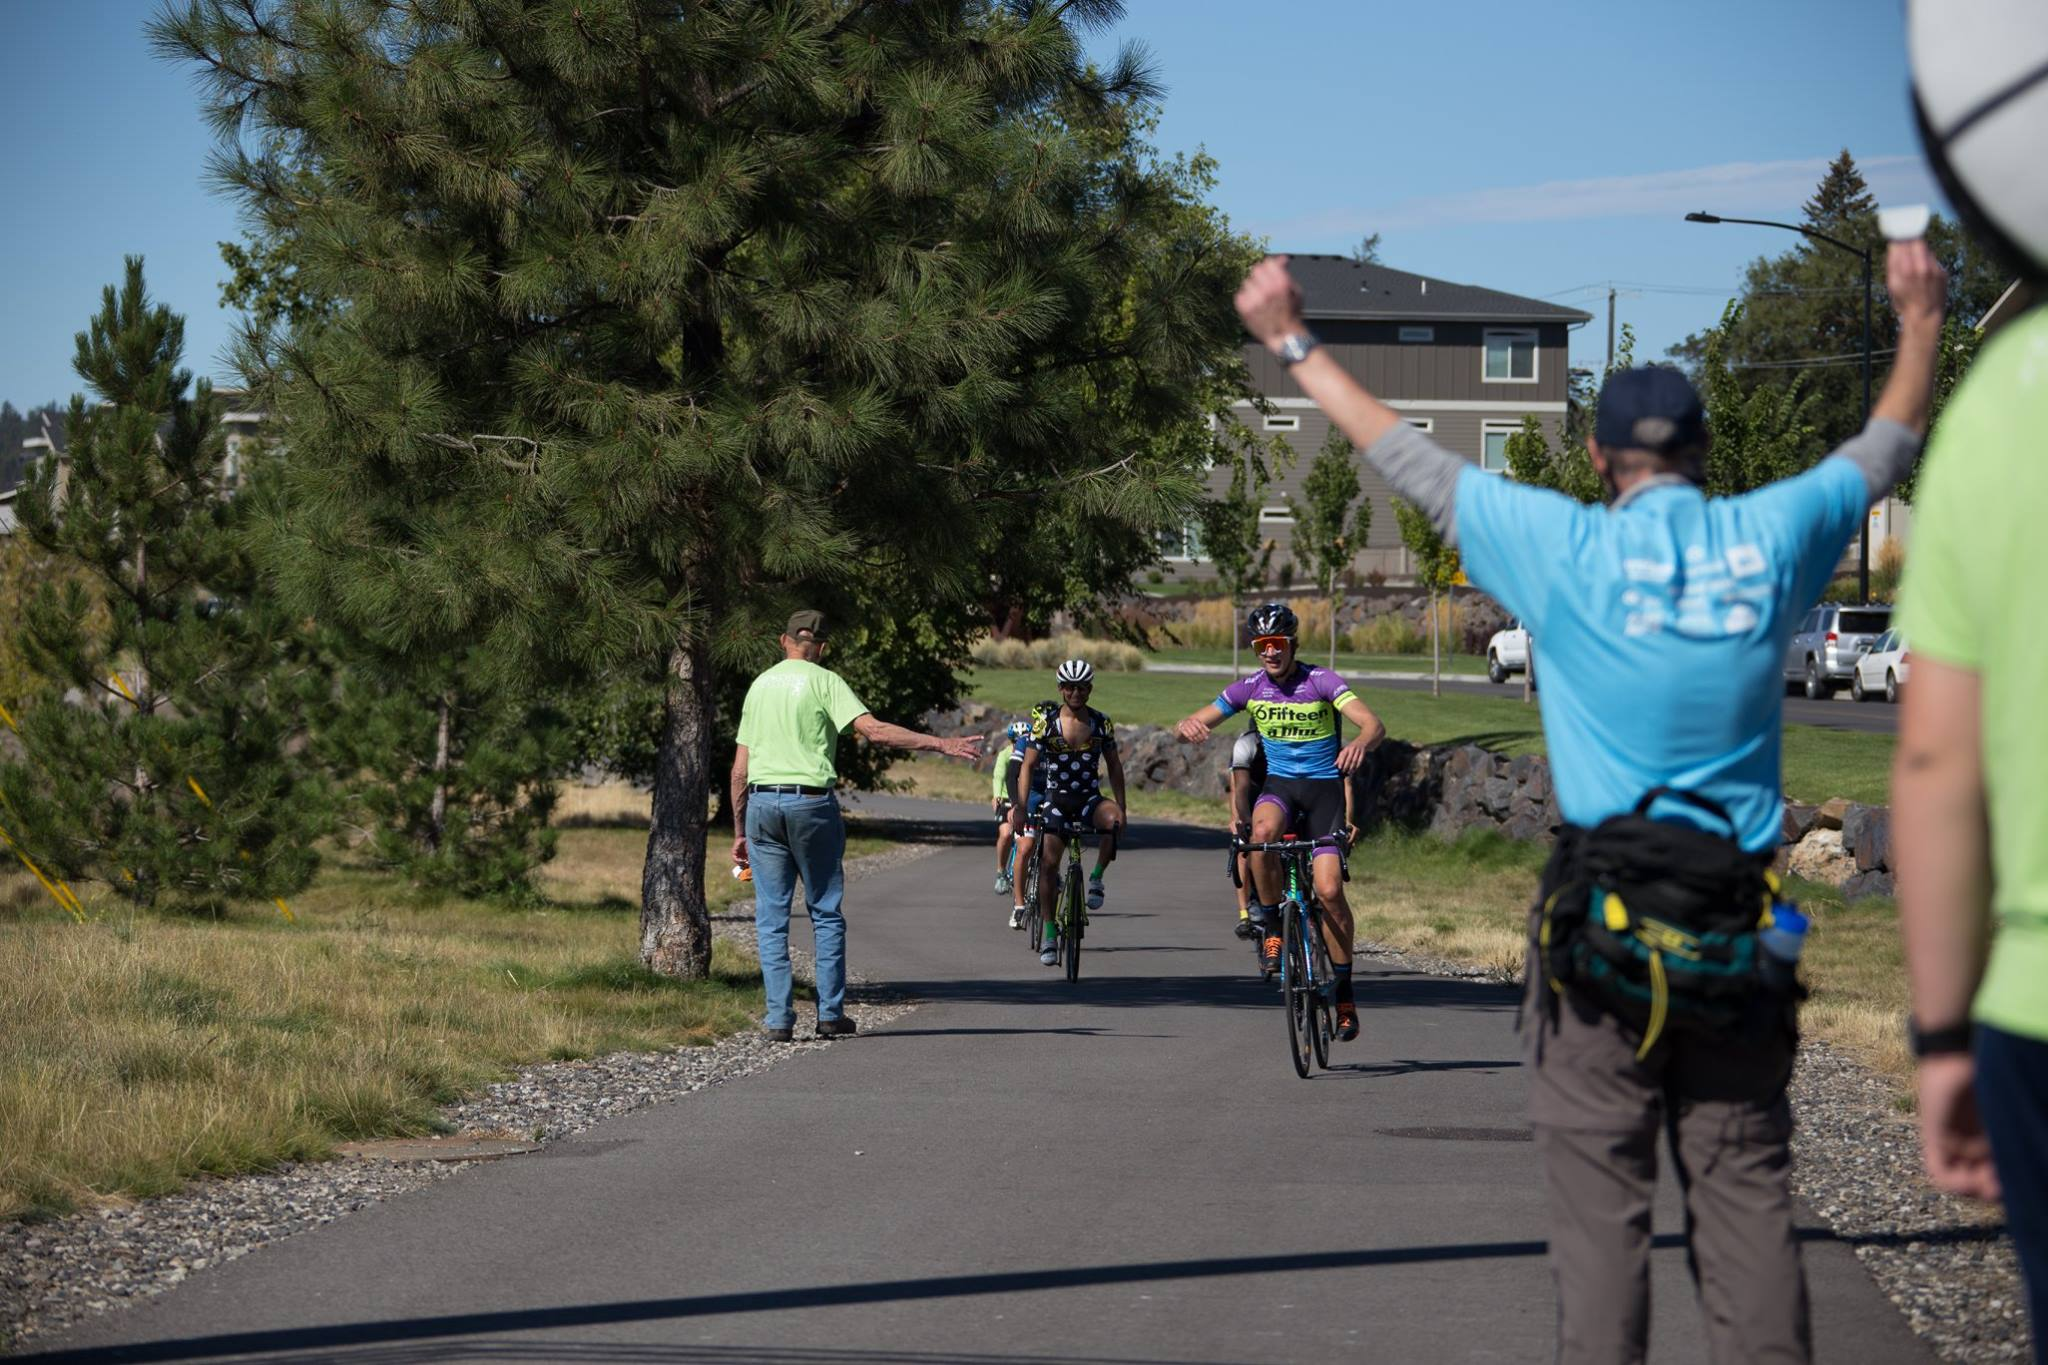 Bicyclers on the Centennial trail during a race